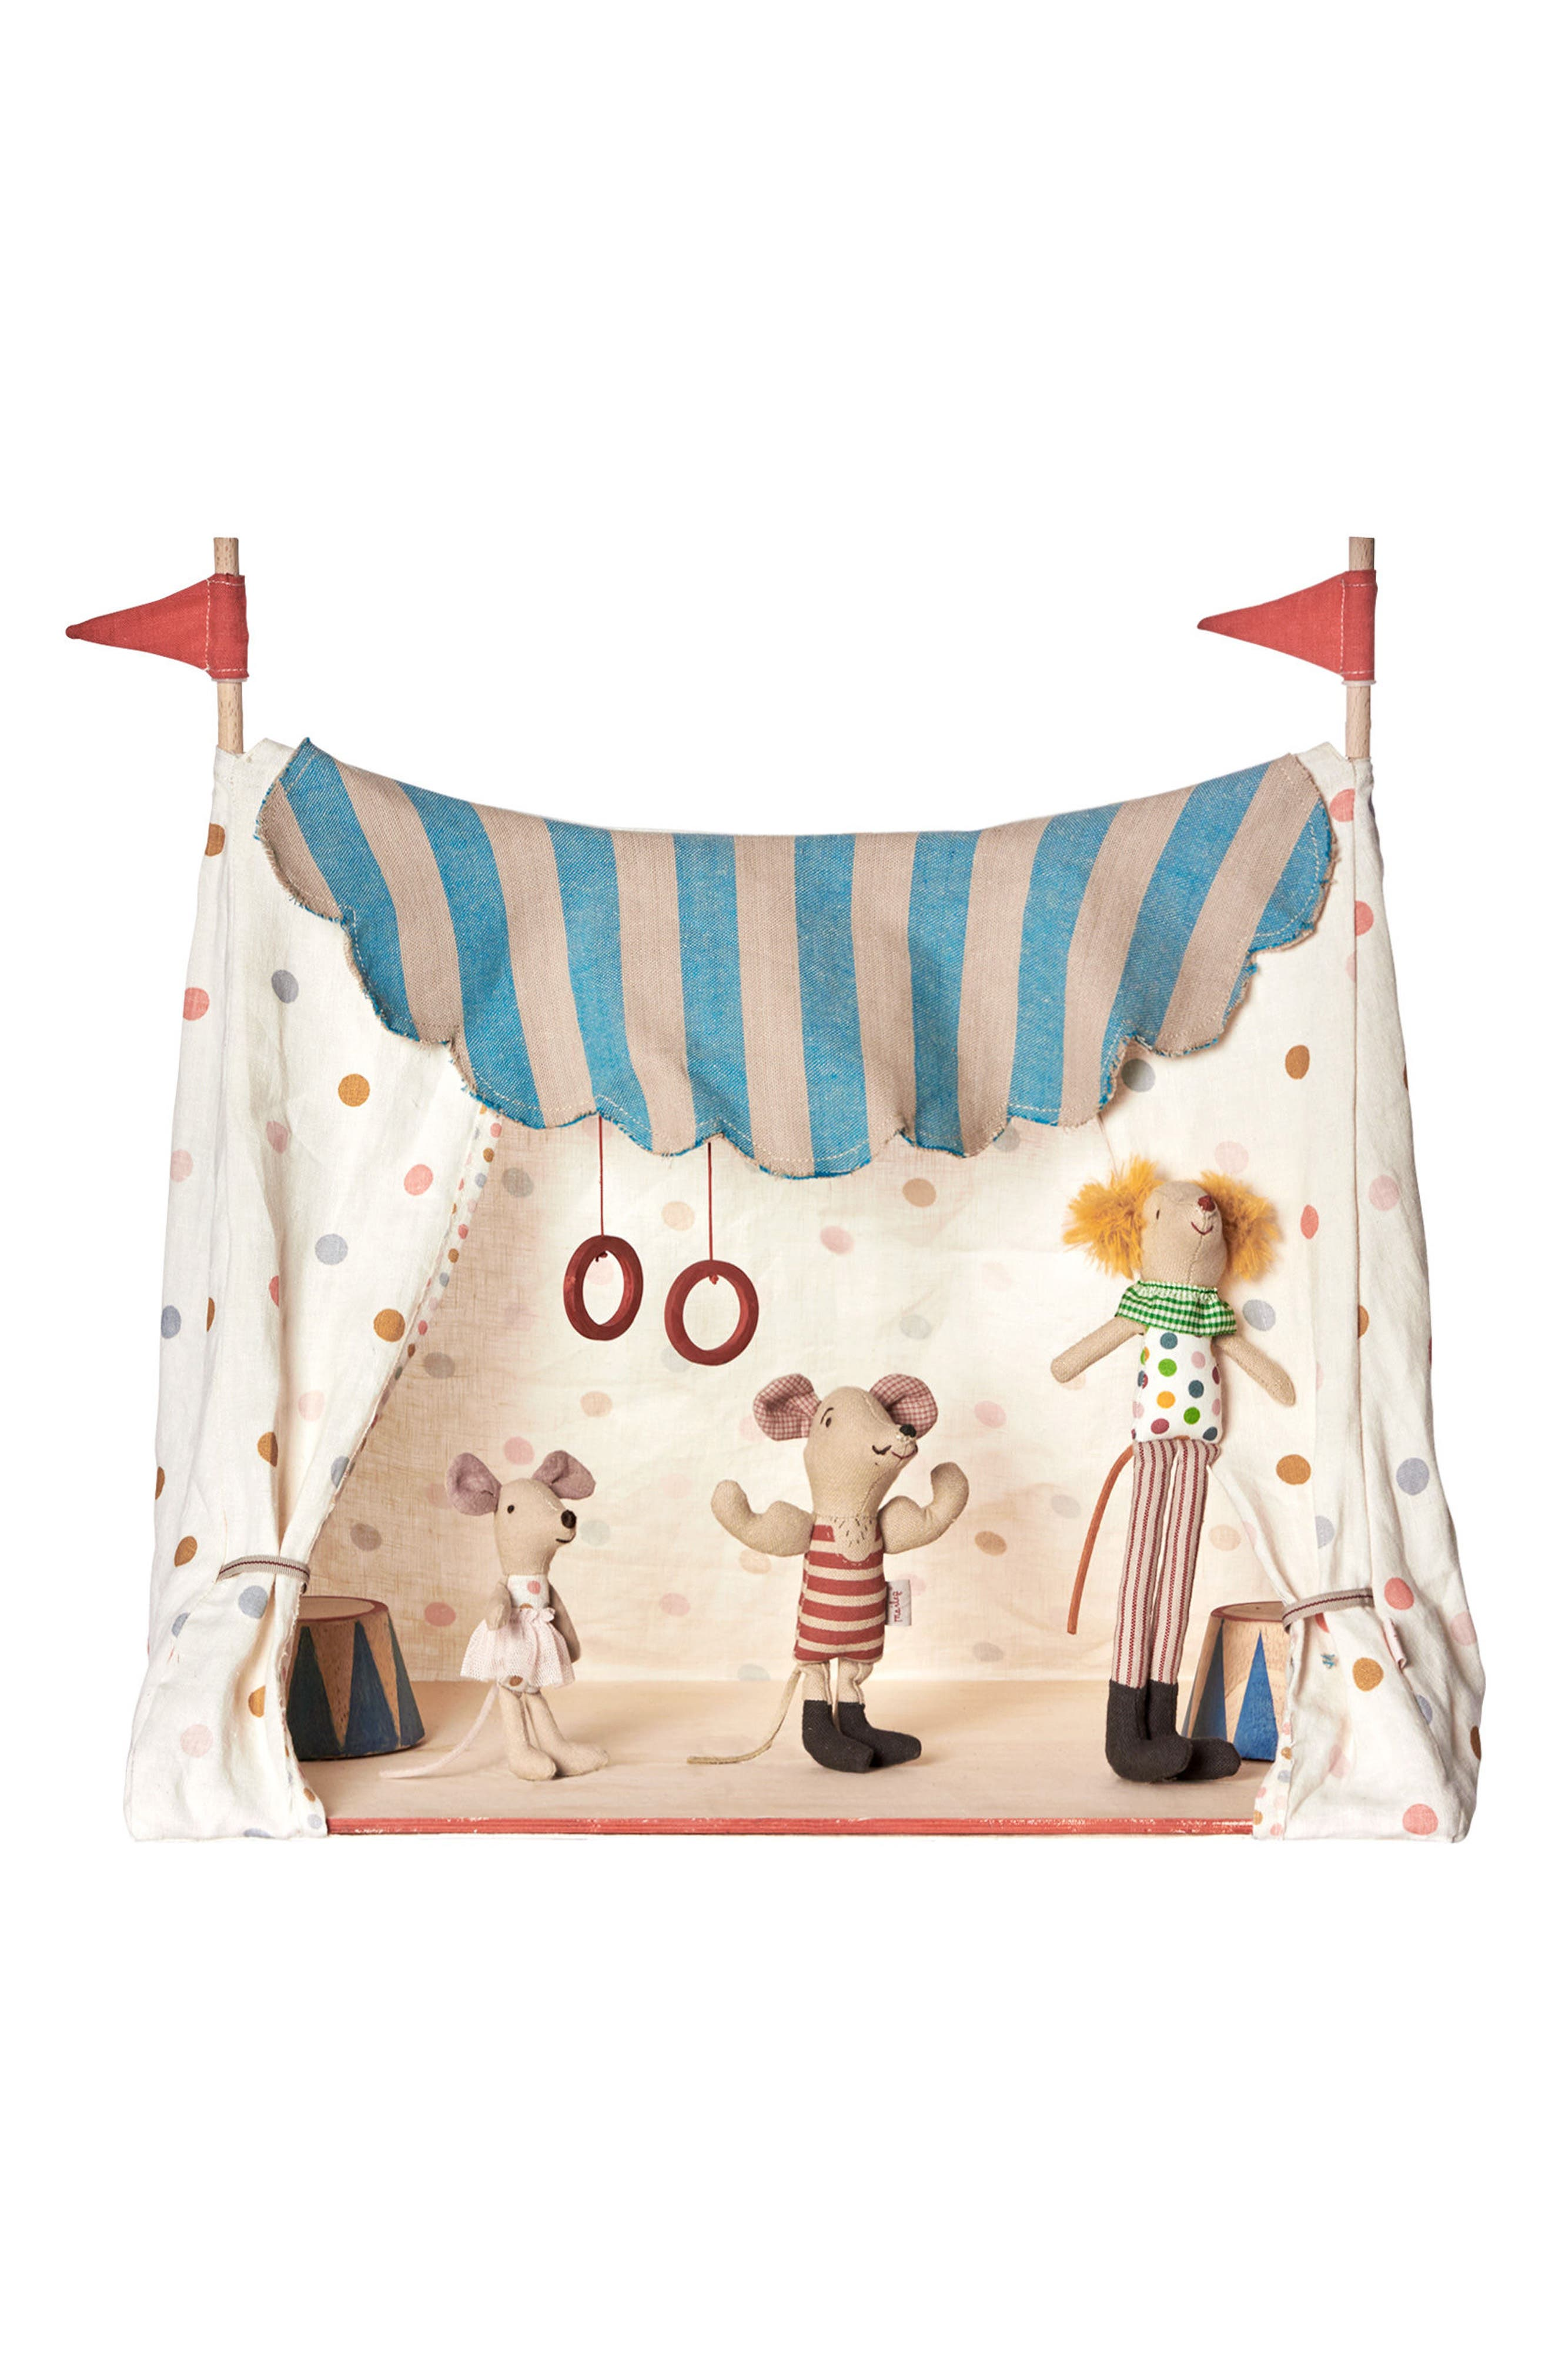 Circus Mice in a Tent,                             Main thumbnail 1, color,                             Multi